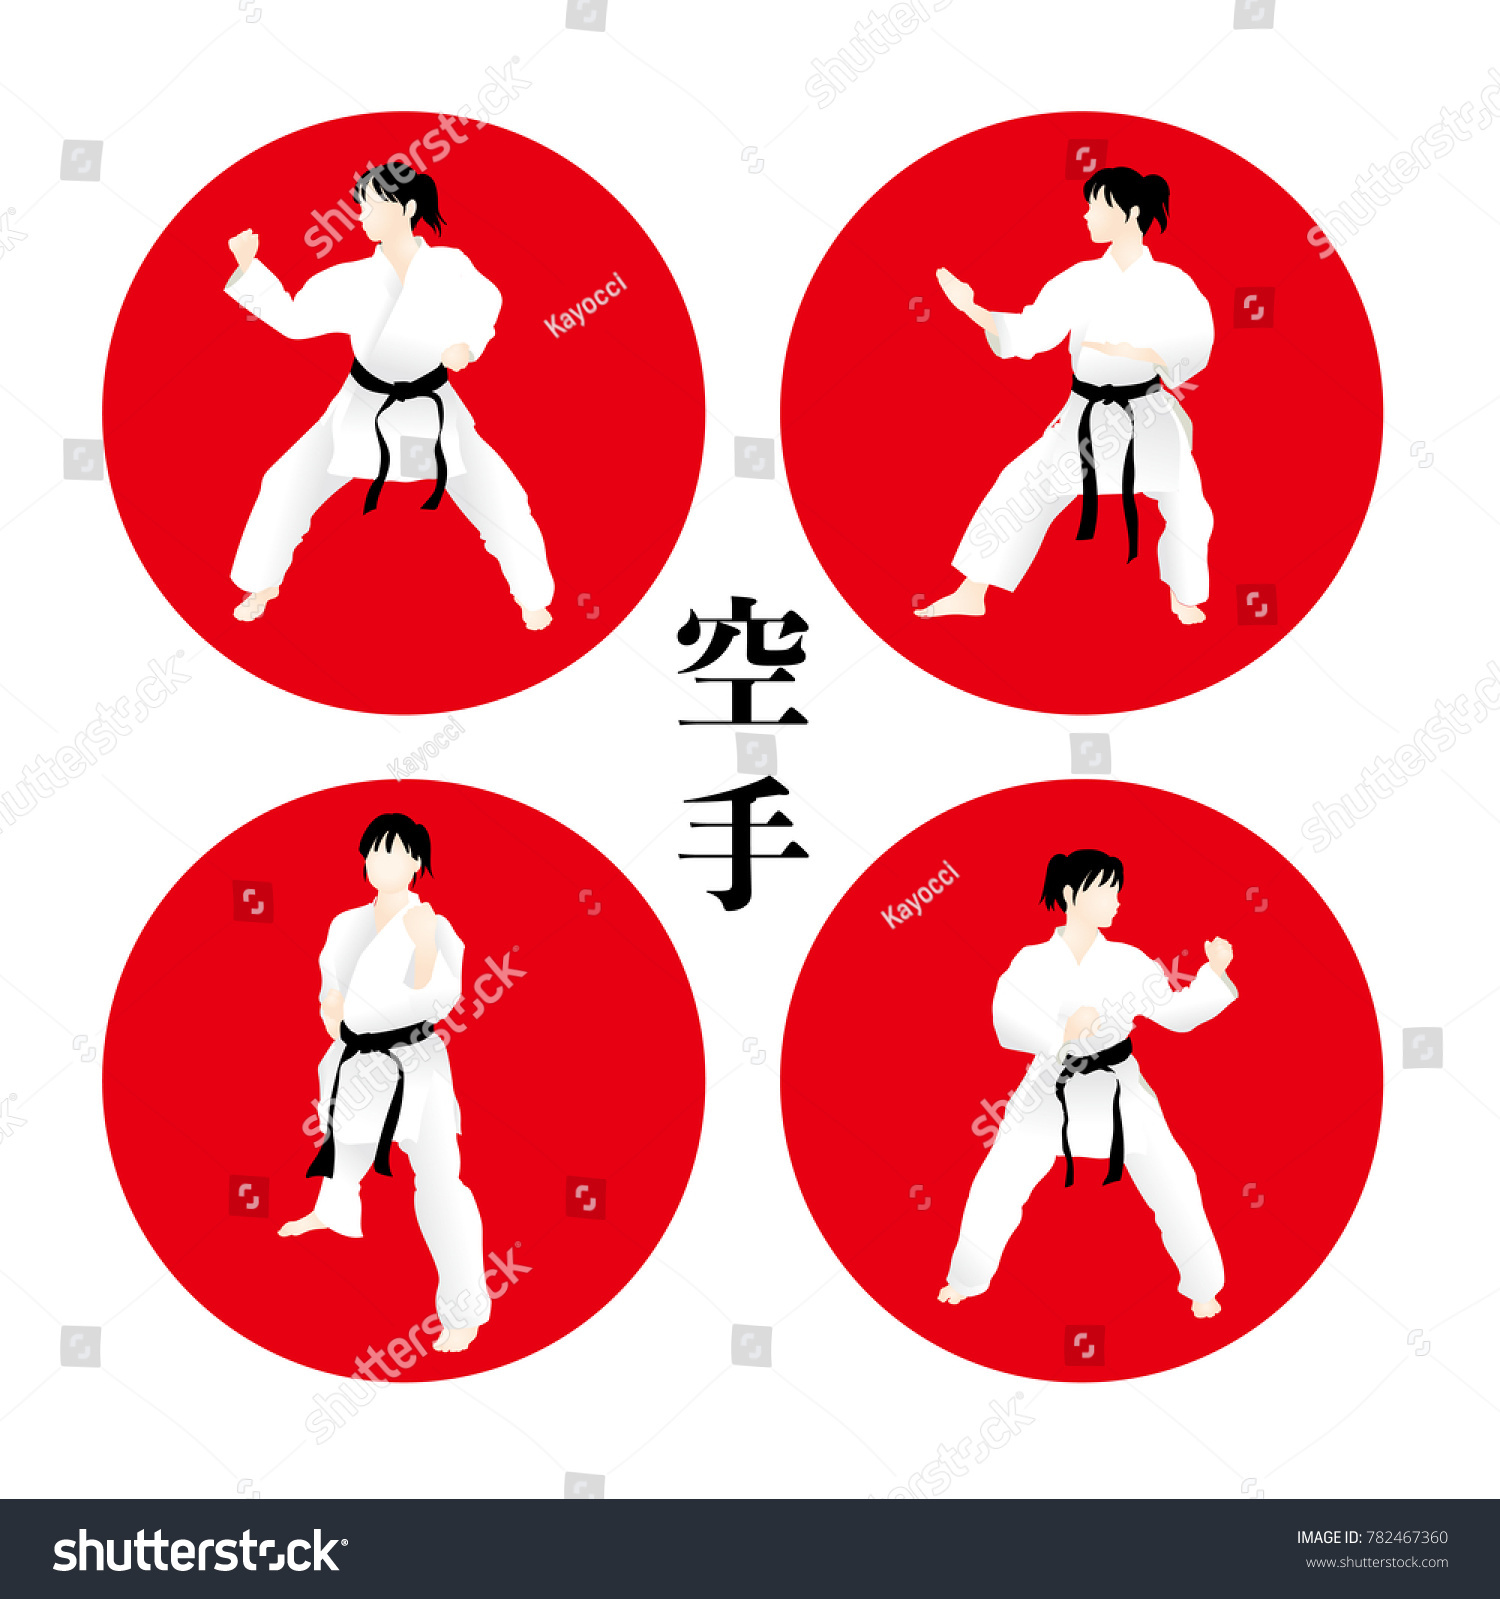 Karate Pose Set Font Center Image Stock Vector Royalty Free 782467360